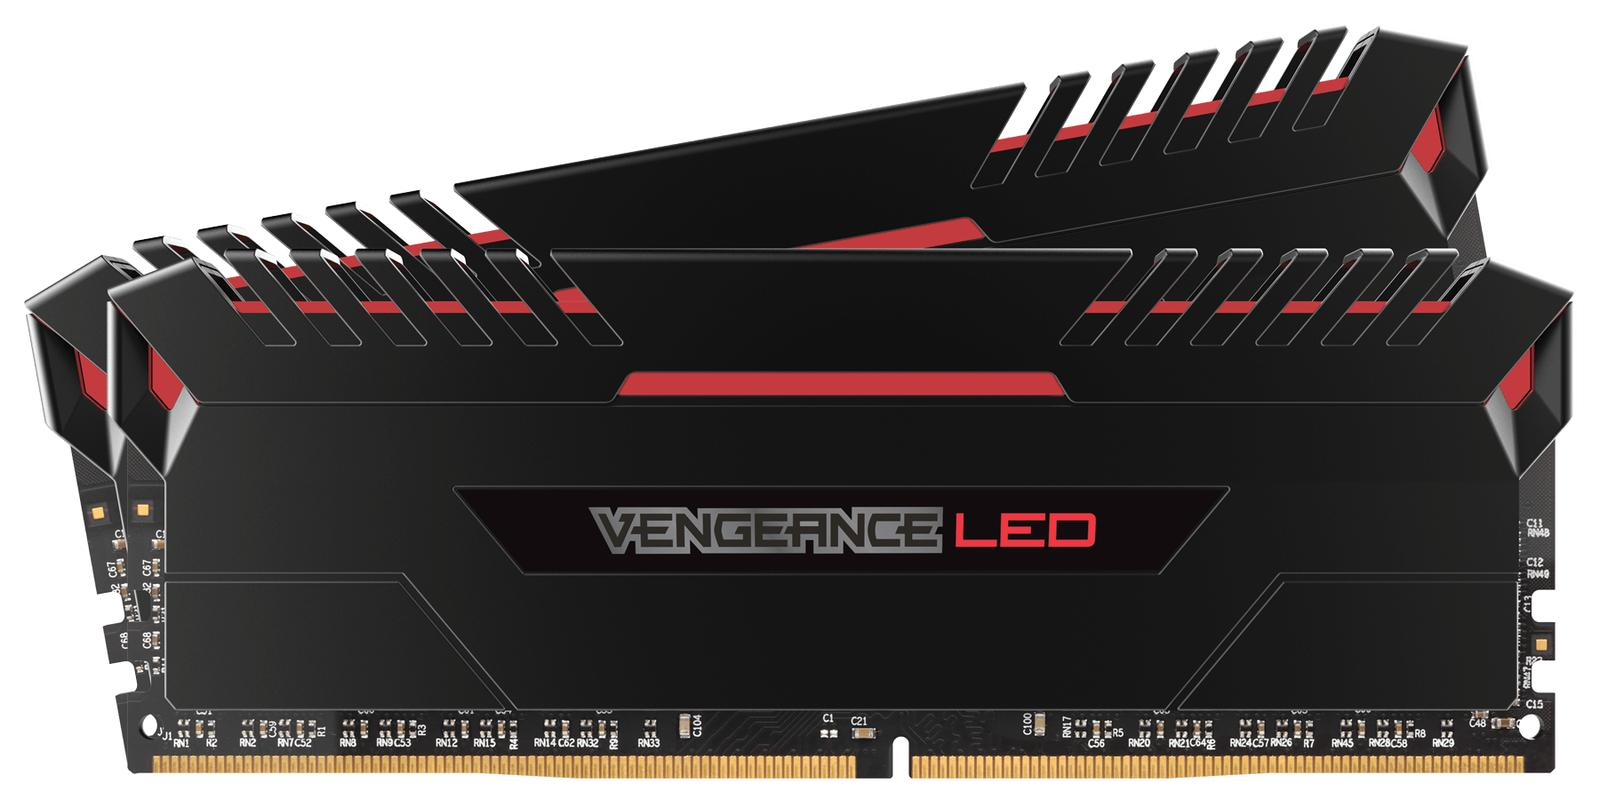 Corsair Vengeance LED 32GB (2x16GB) DDR4-3200